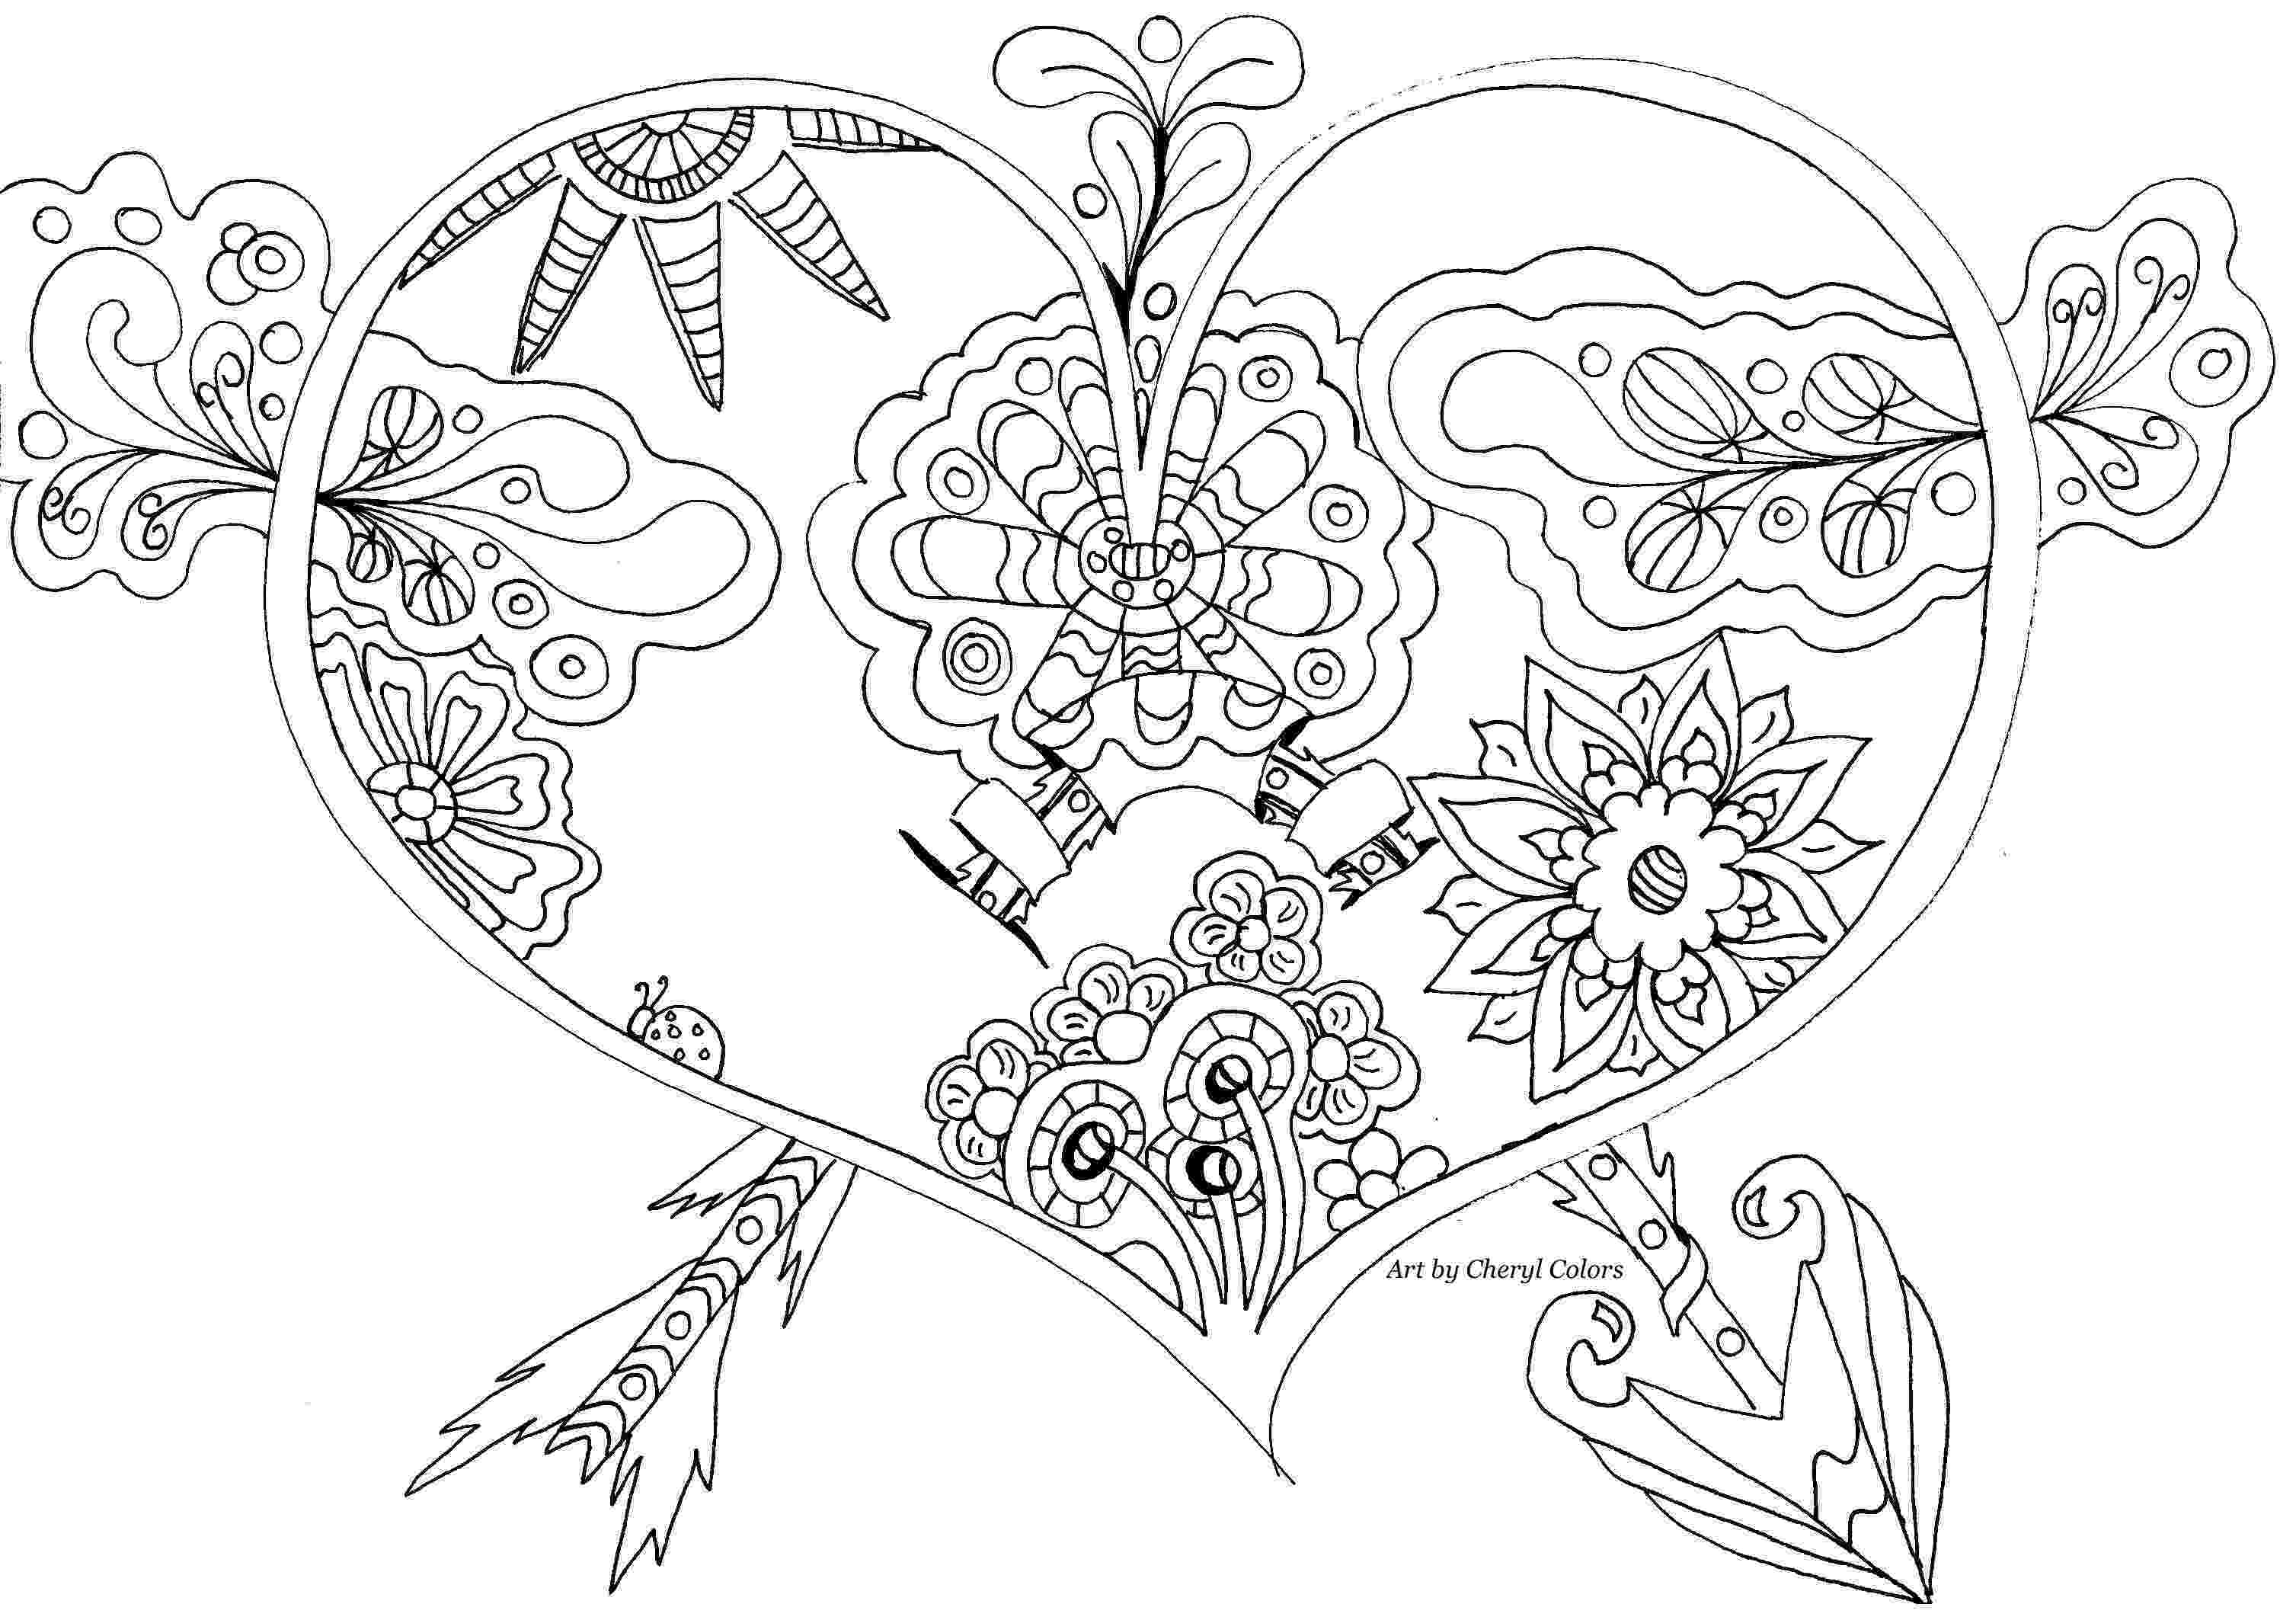 new colouring pages for adults 150 latest adult coloring pages free download pages colouring for adults new